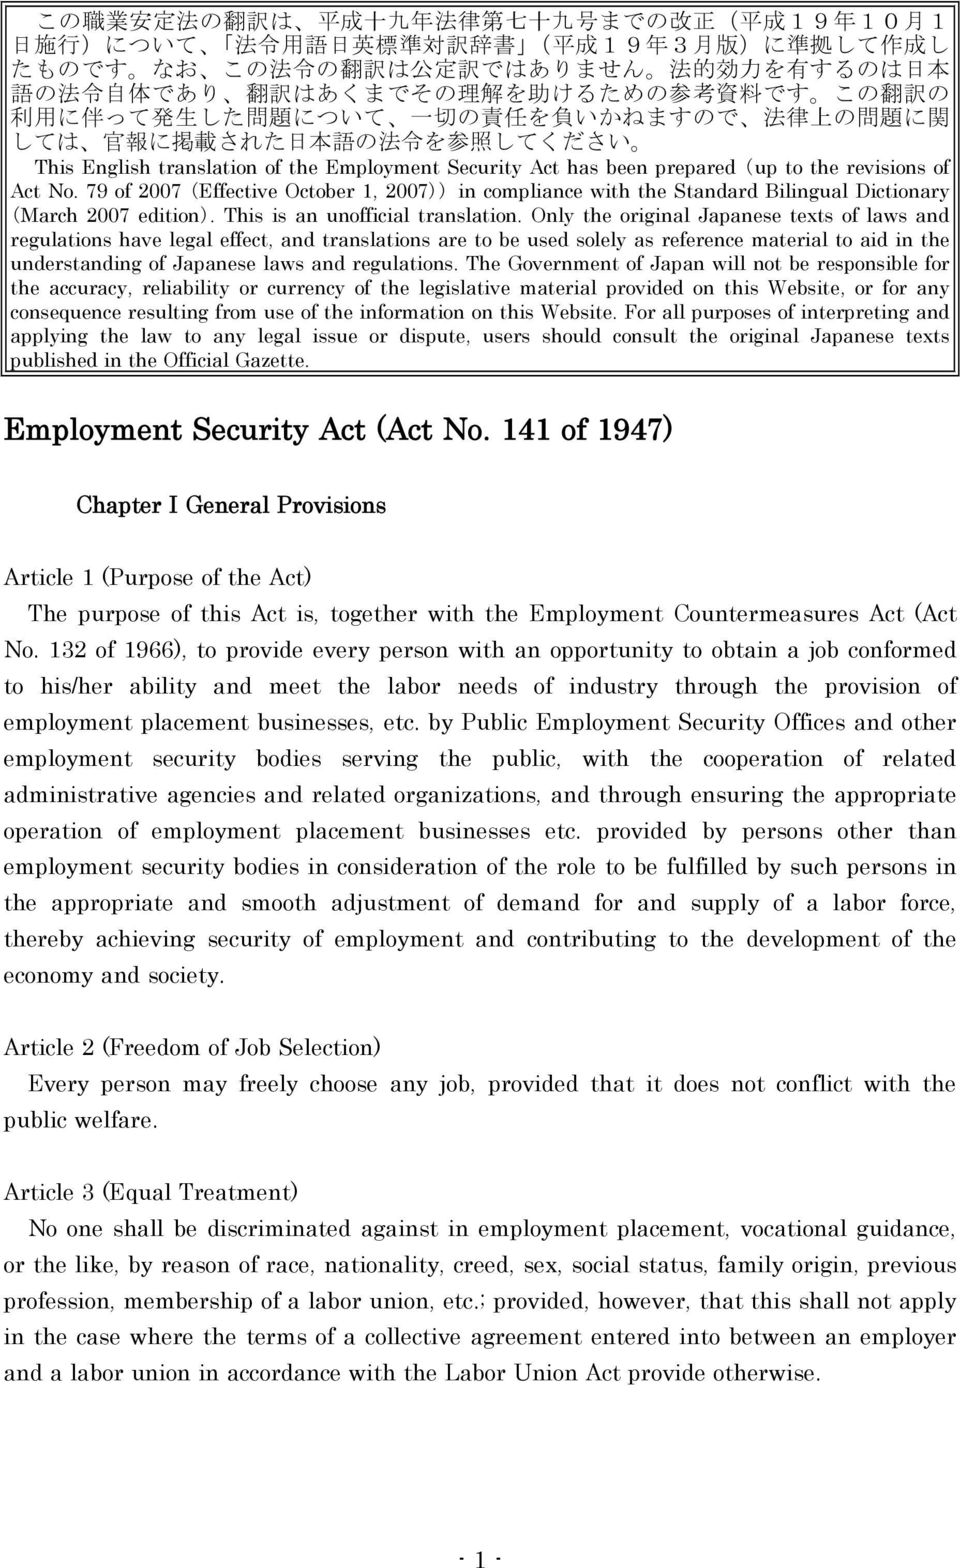 the Employment Security Act has been prepared ( up to the revisions of Act No. 79 of 2007 ( Effective October 1, 2007)) in compliance with the Standard Bilingual Dictionary ( March 2007 edition ).